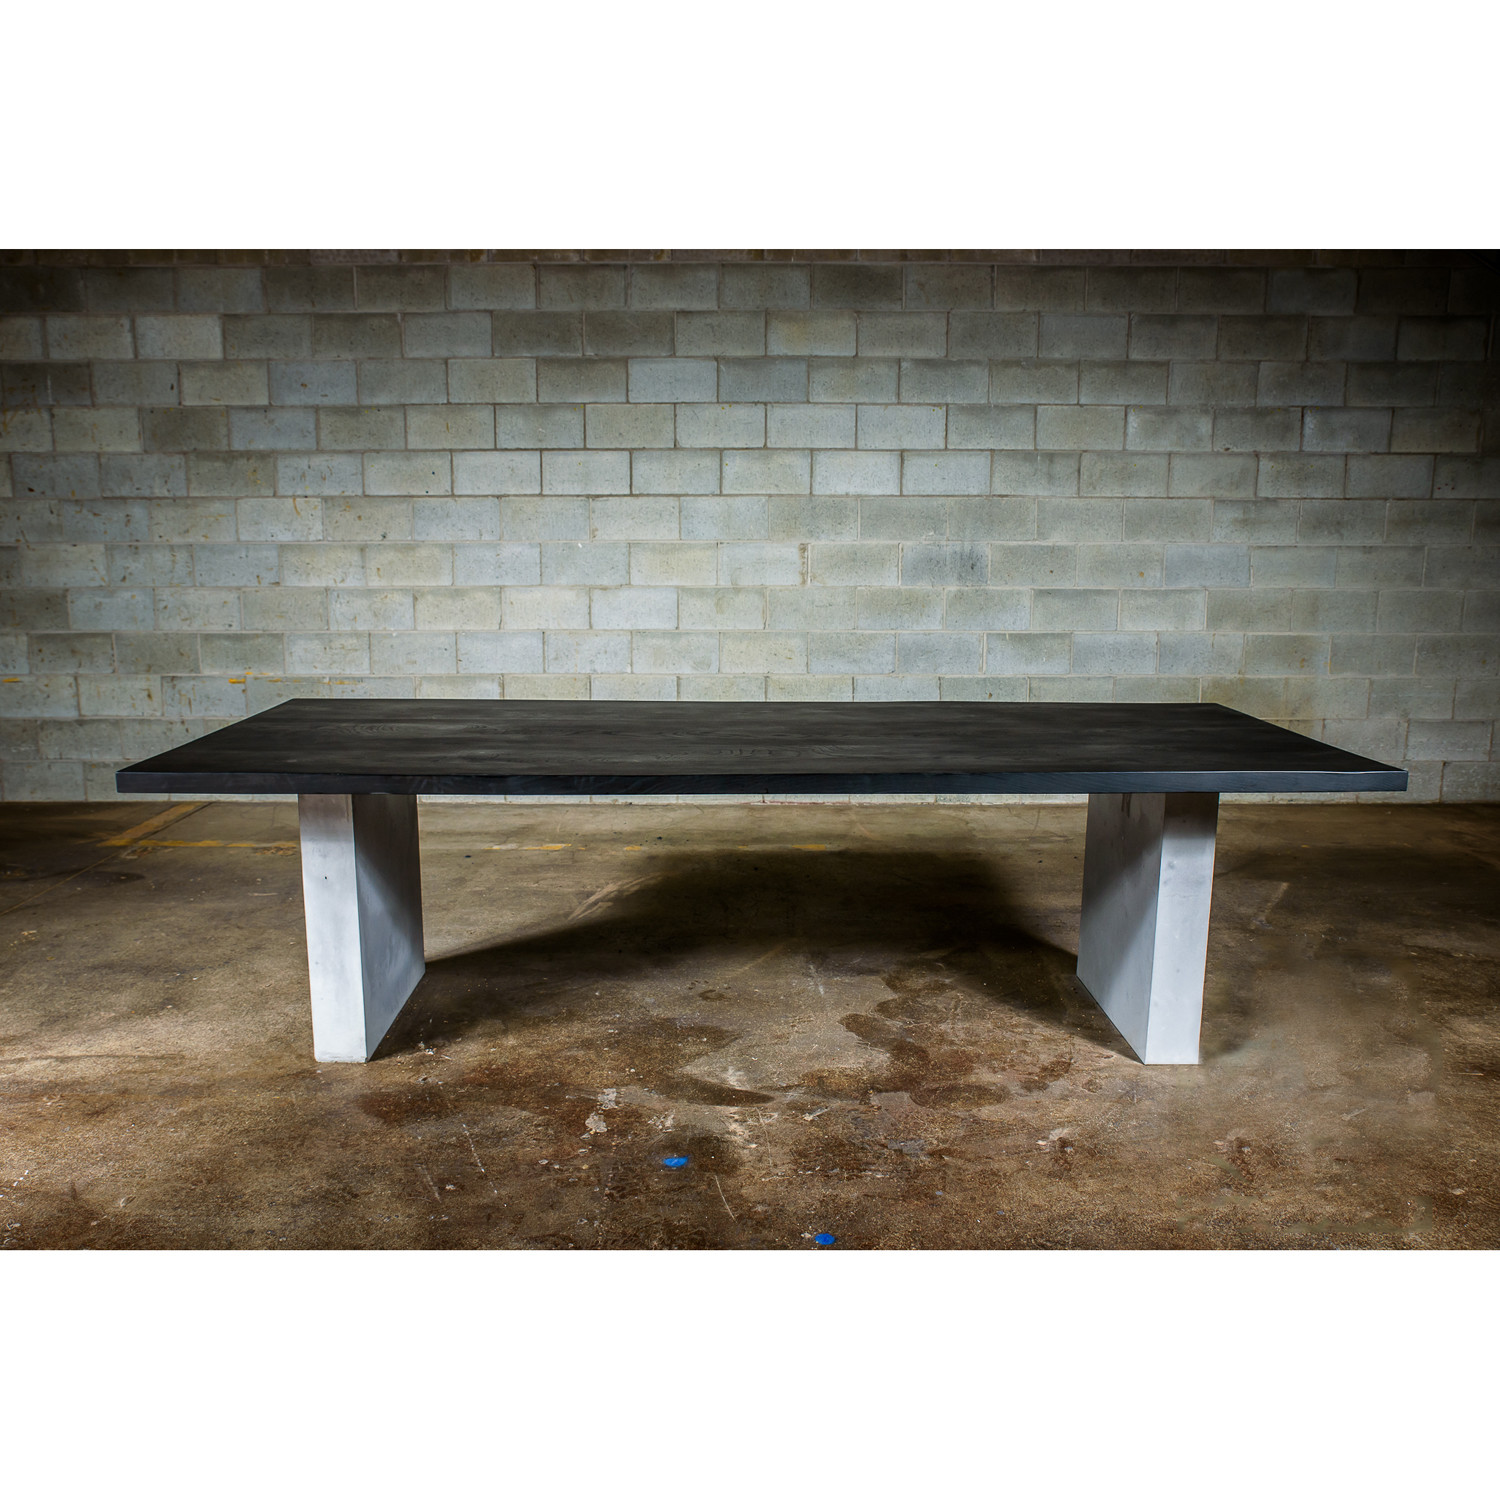 Dining Table Black Stained Ash Wood Concrete Legs 96